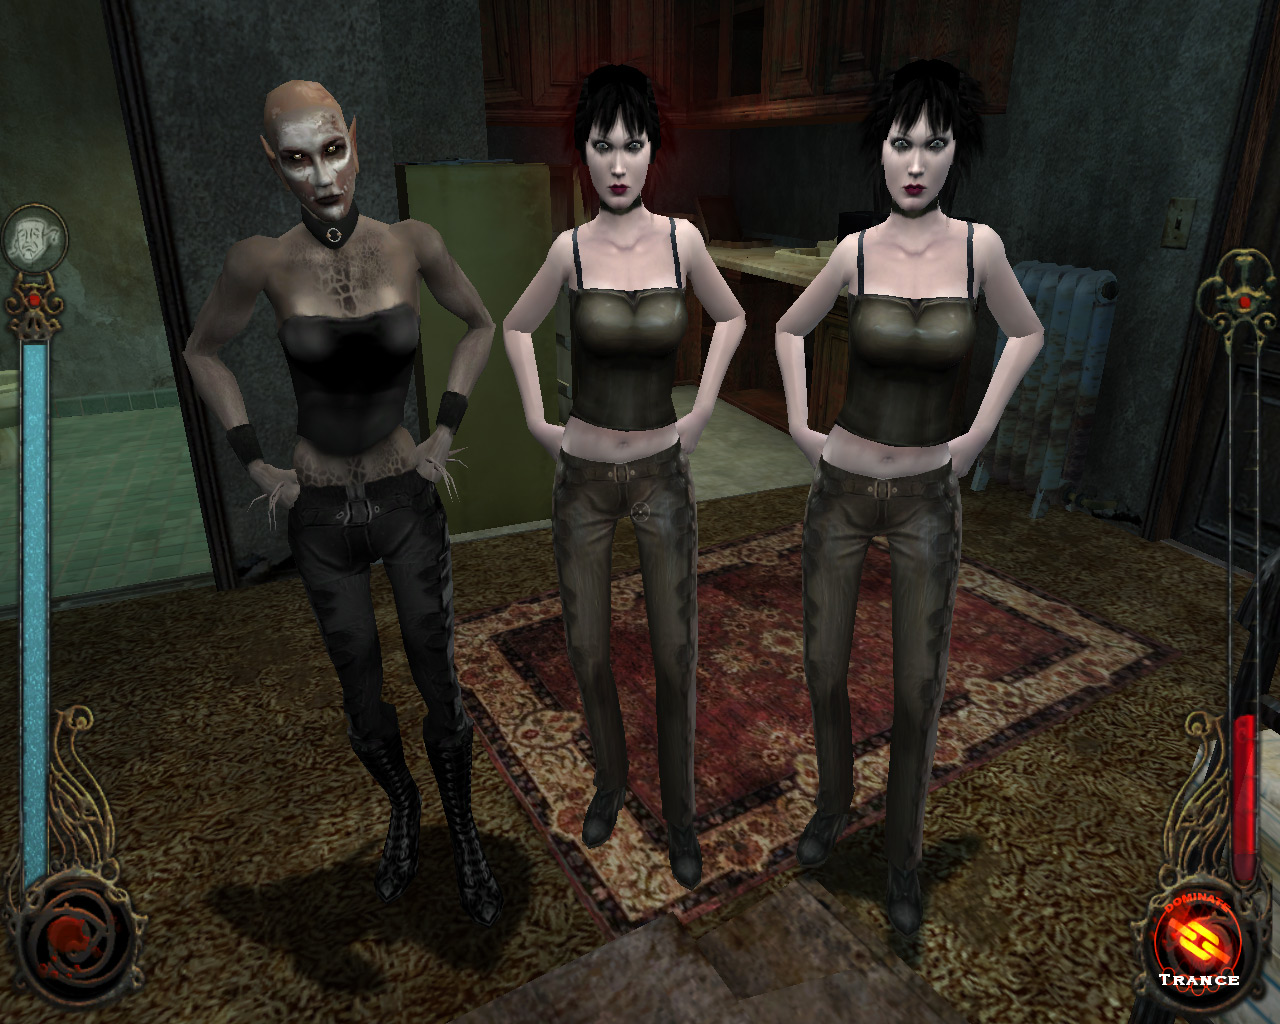 Vampire the masquerade sex mod sexual film